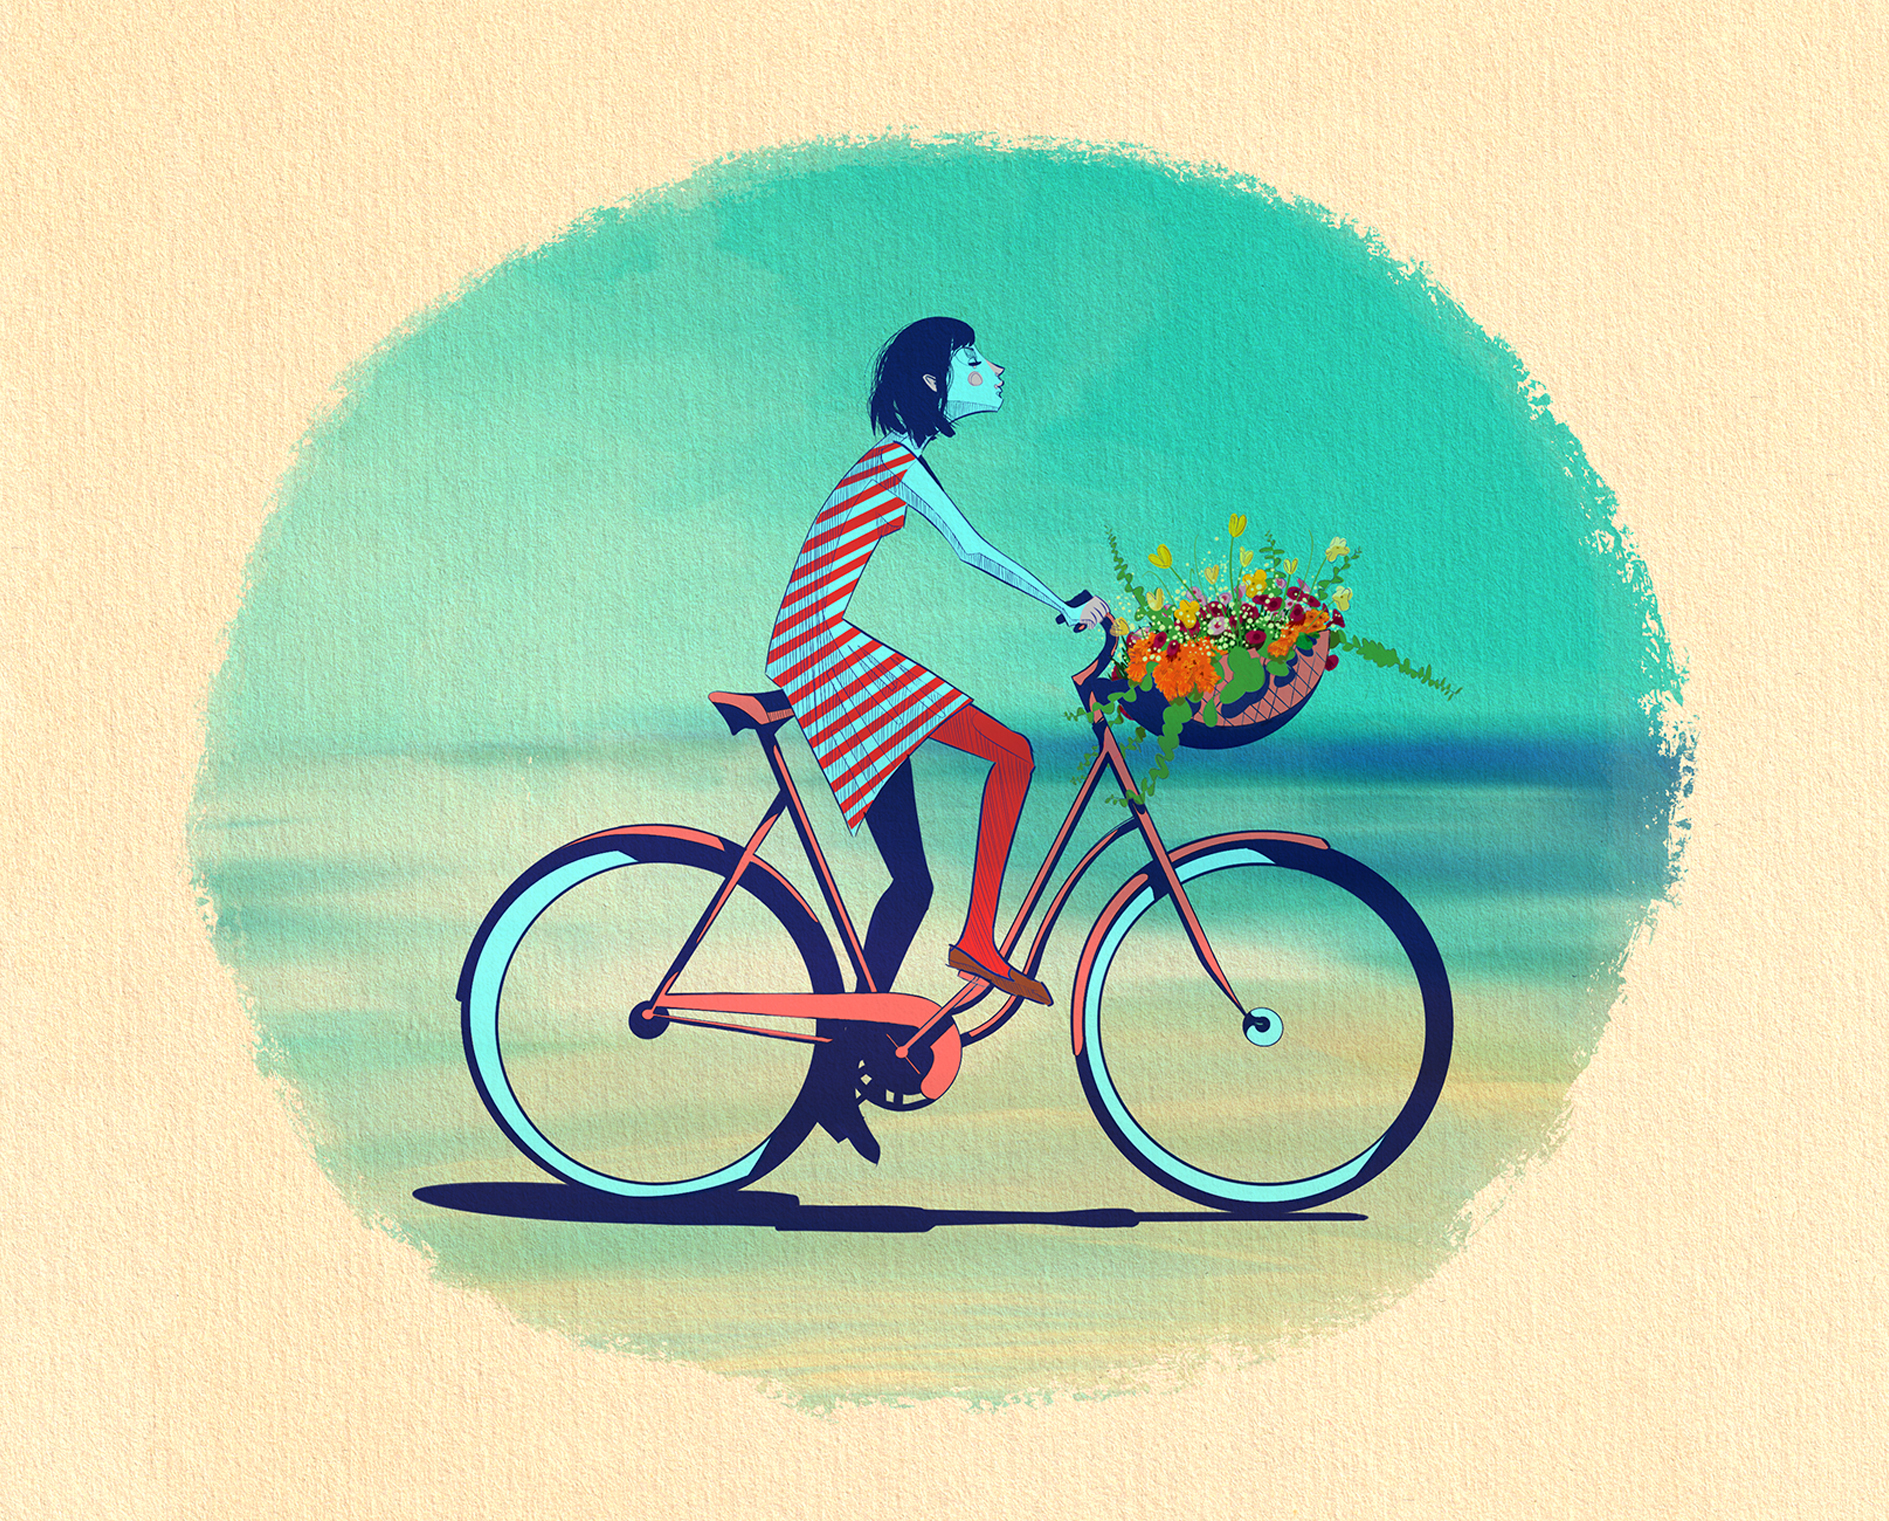 Bicycle_Girl_Woman_Illustration_Greeting